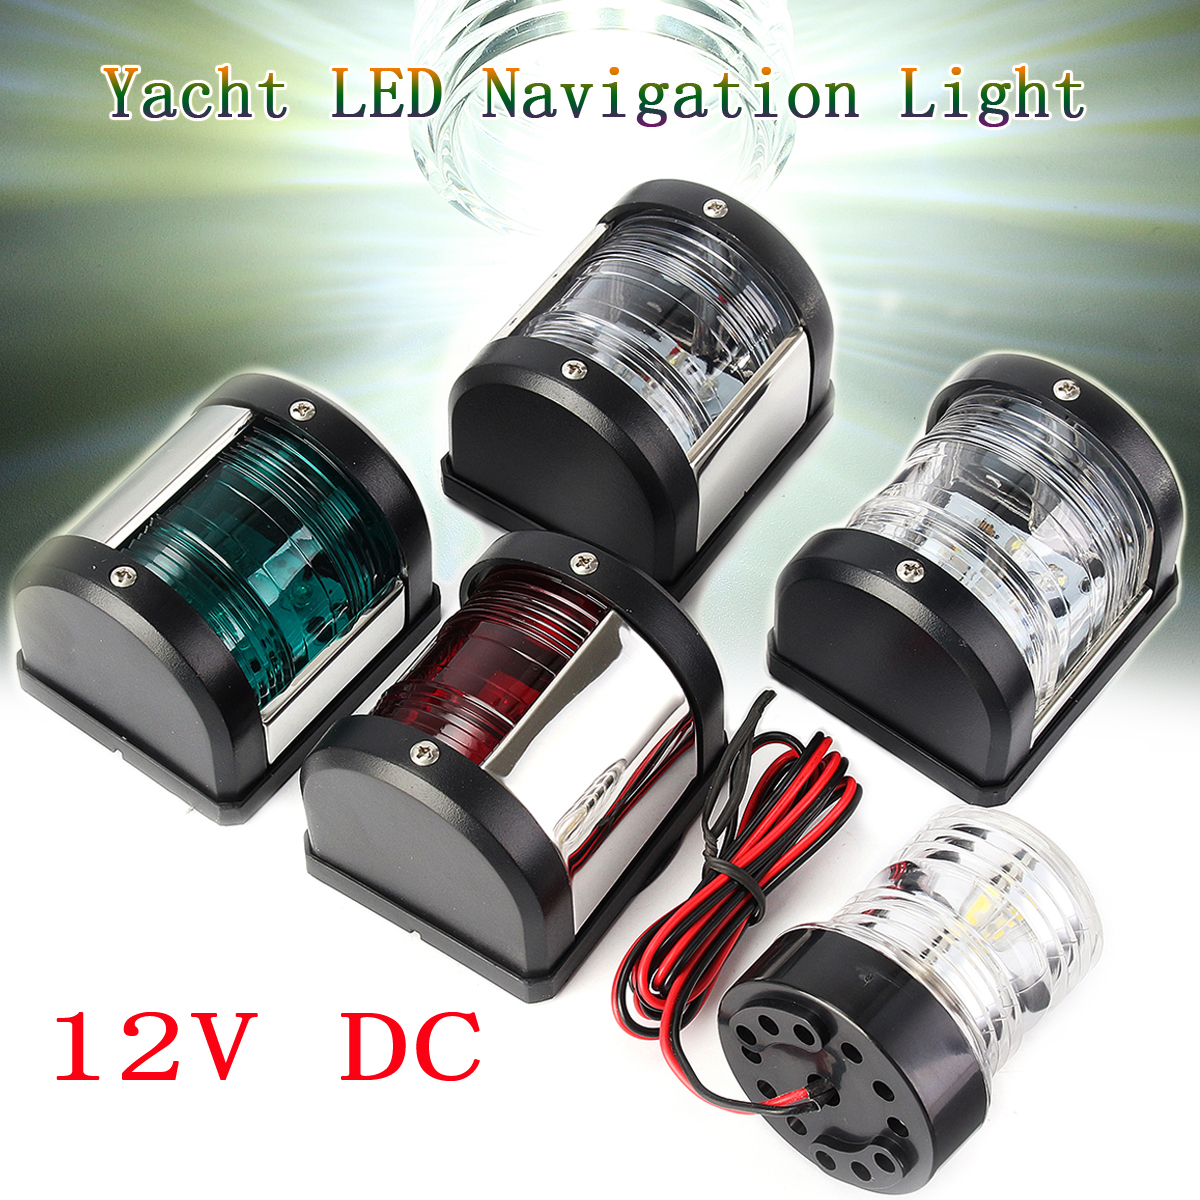 Jeazea 2pcs Dc12v 8w Green Red Marine Navigation Led Light Starboard Port Side Light For Boat Yacht Skeeter Marine Hardware